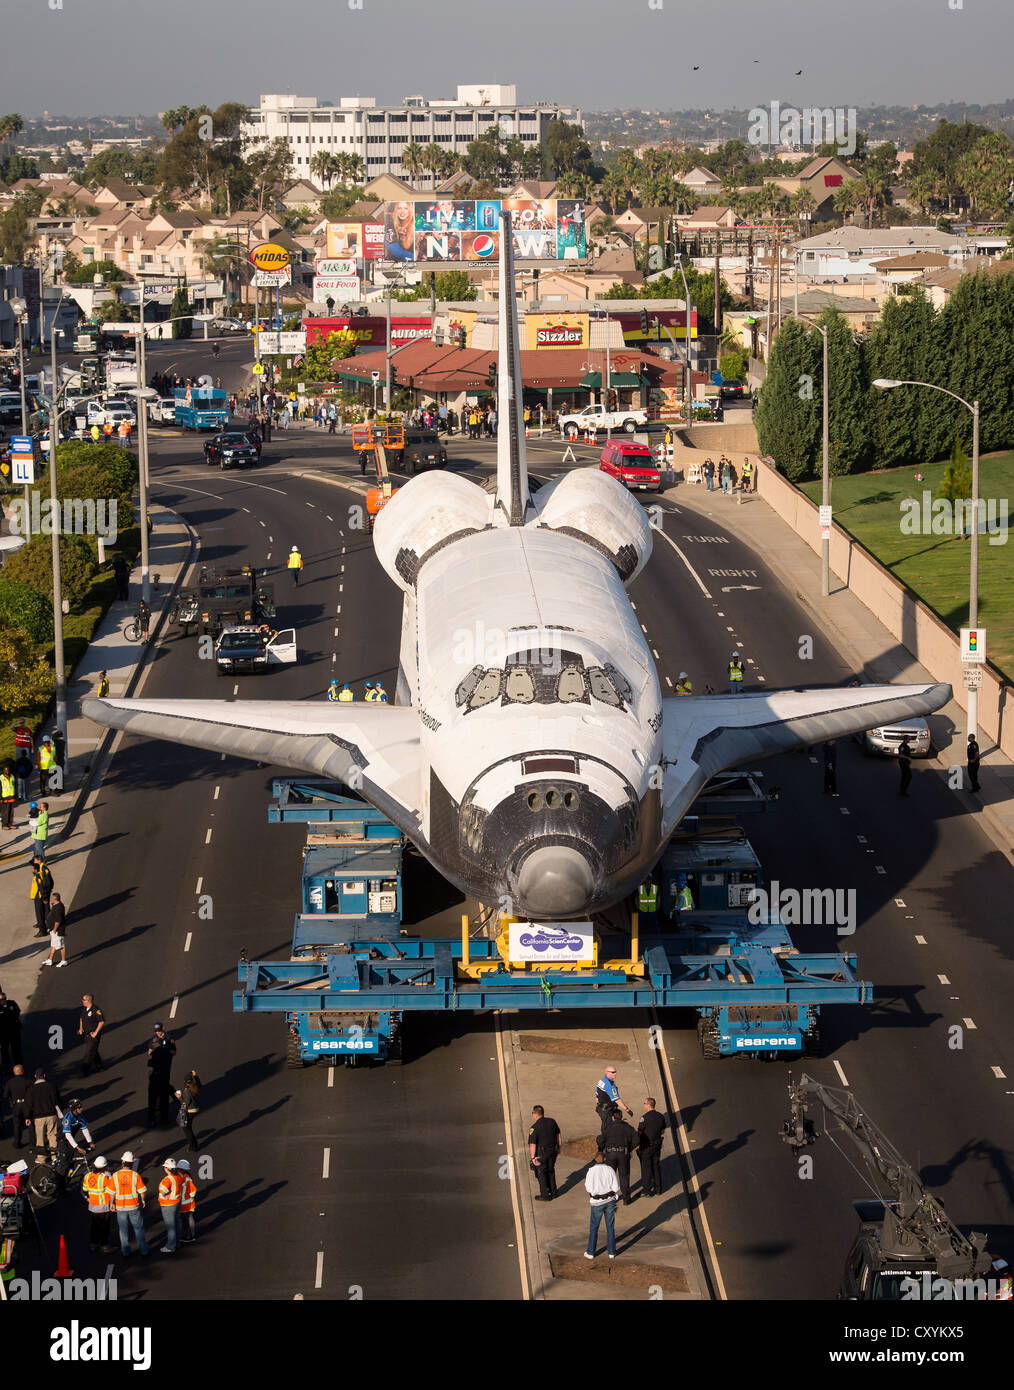 why was space shuttle program stopped - photo #7